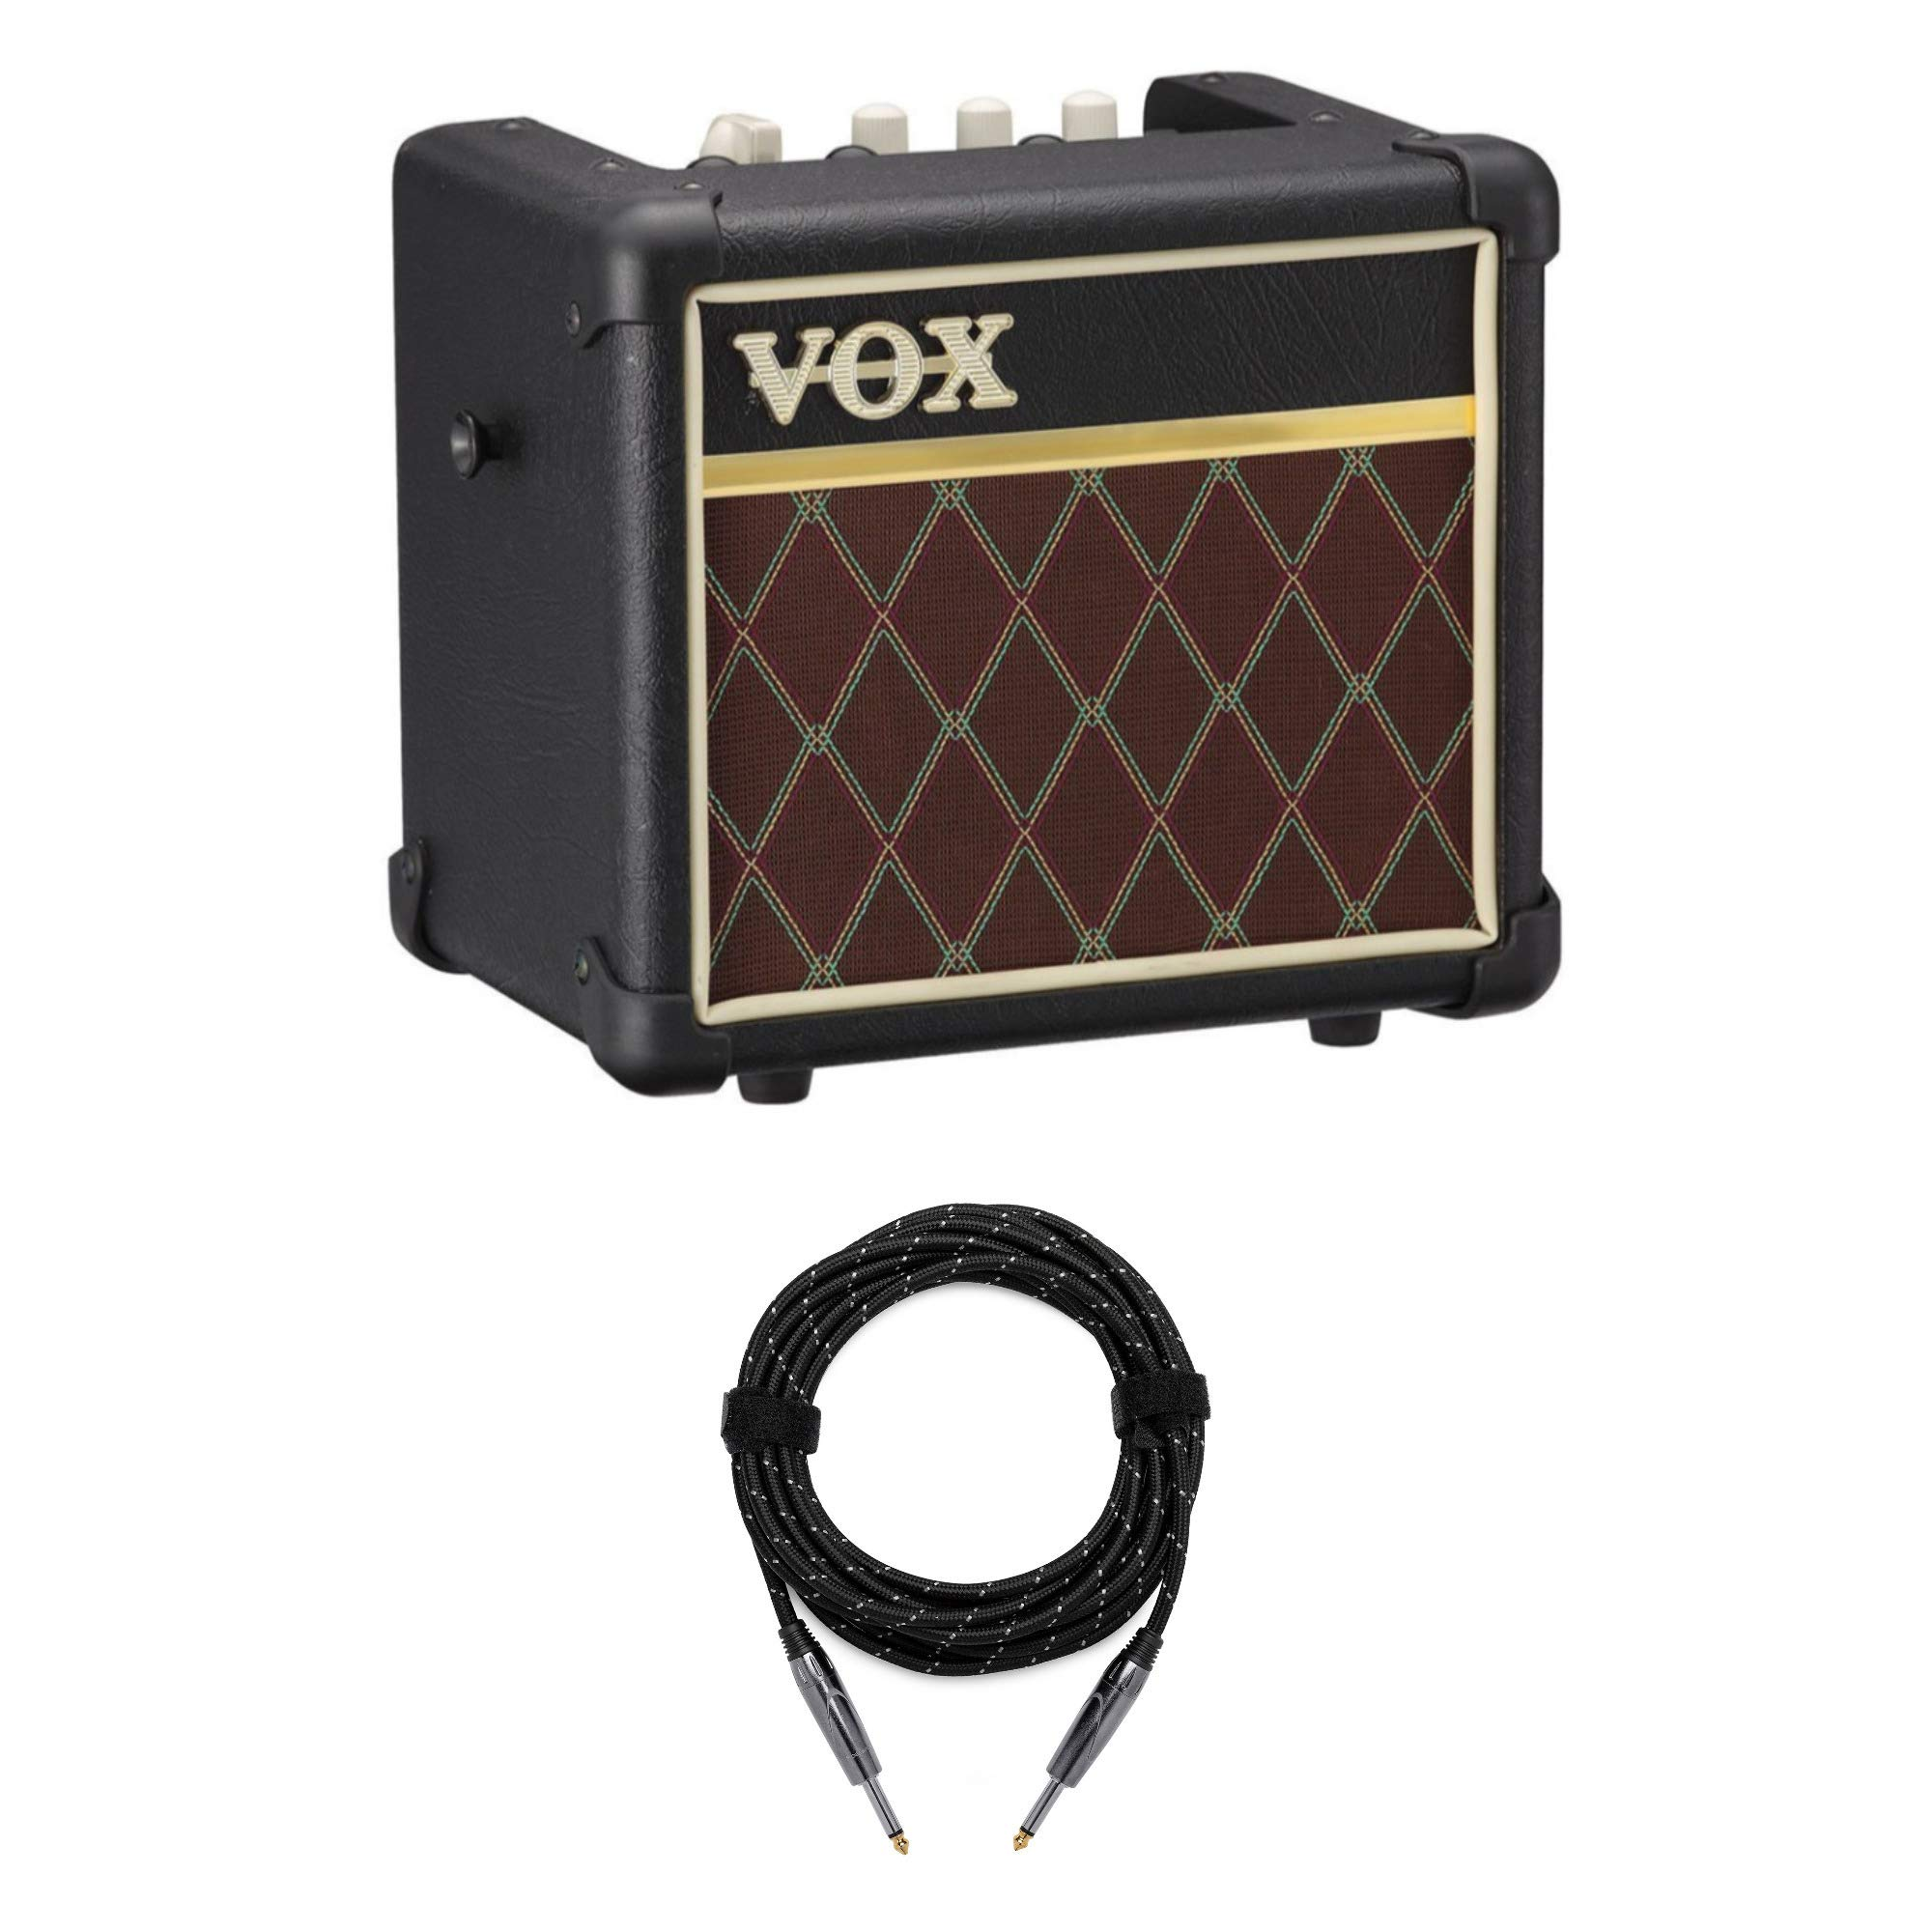 VOX MINI3 G2 Battery Powered Modeling Amp (3W, Classic) Bundle with Knox Guitar Cable (2 Items) by Vox